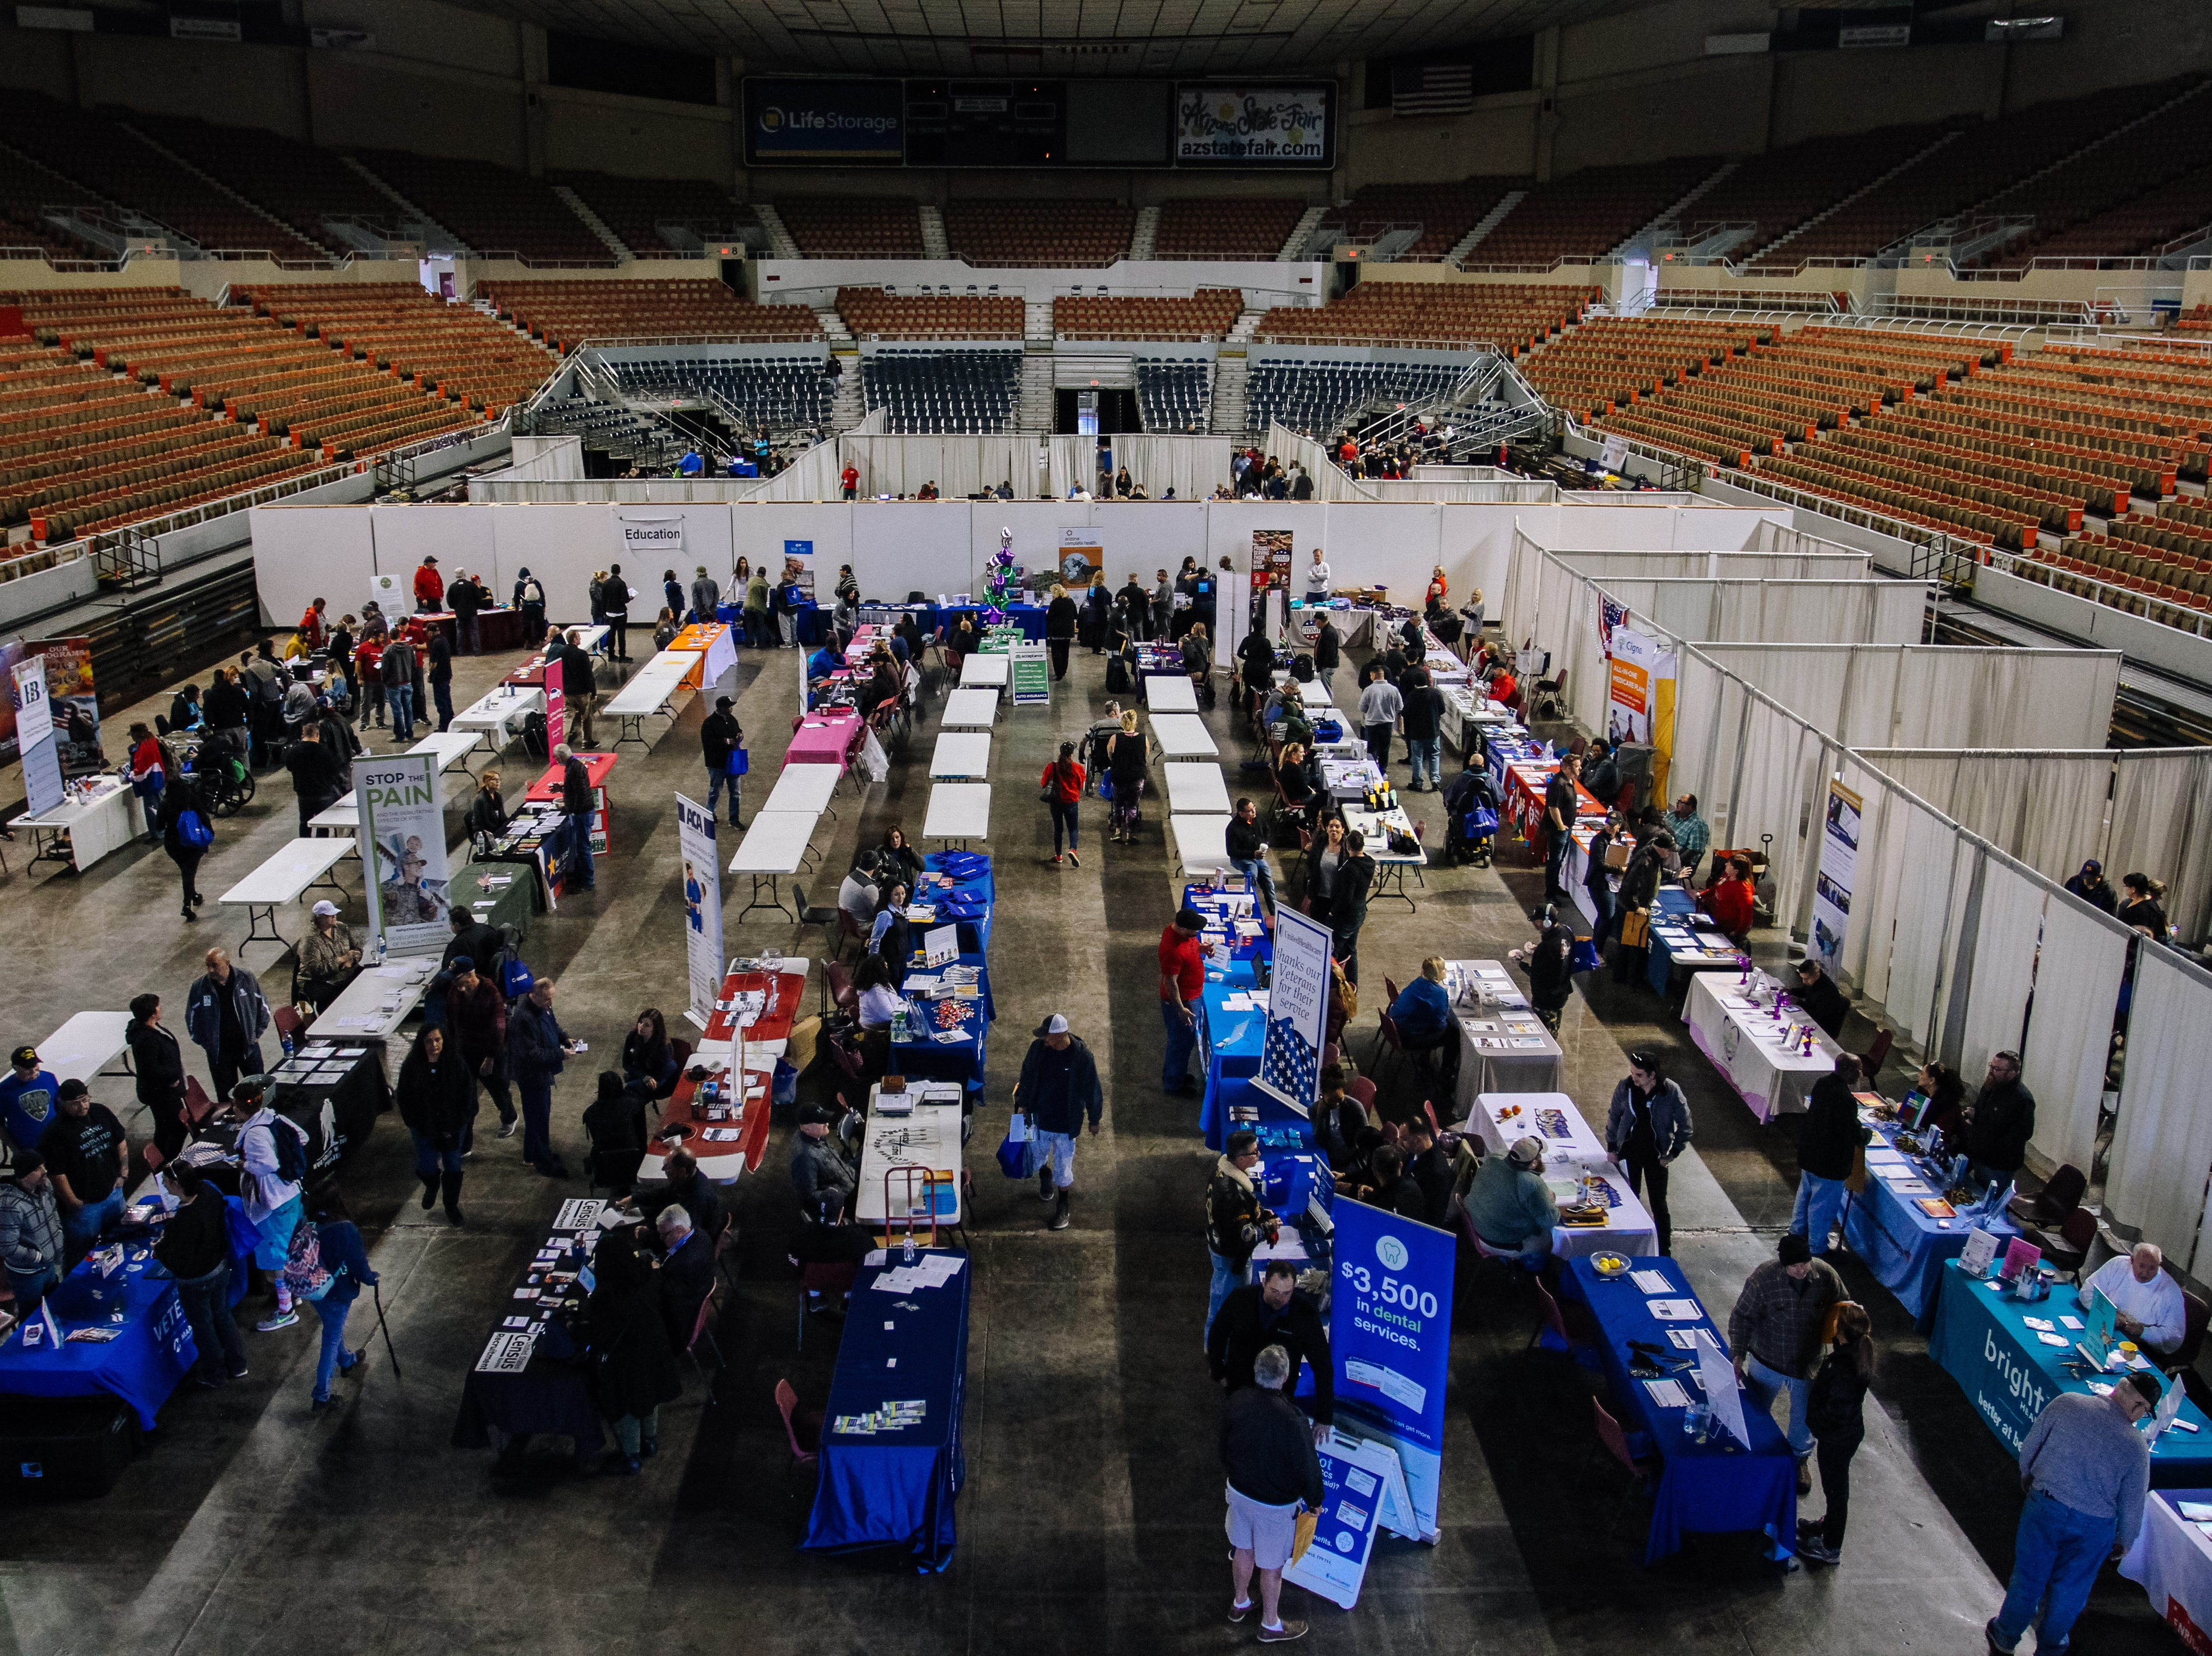 Booths and tables line the floor of the stadium the 2019 Veterans StandDown  at the Arizona State Fairgrounds in Phoenix on Jan. 25, 2019.